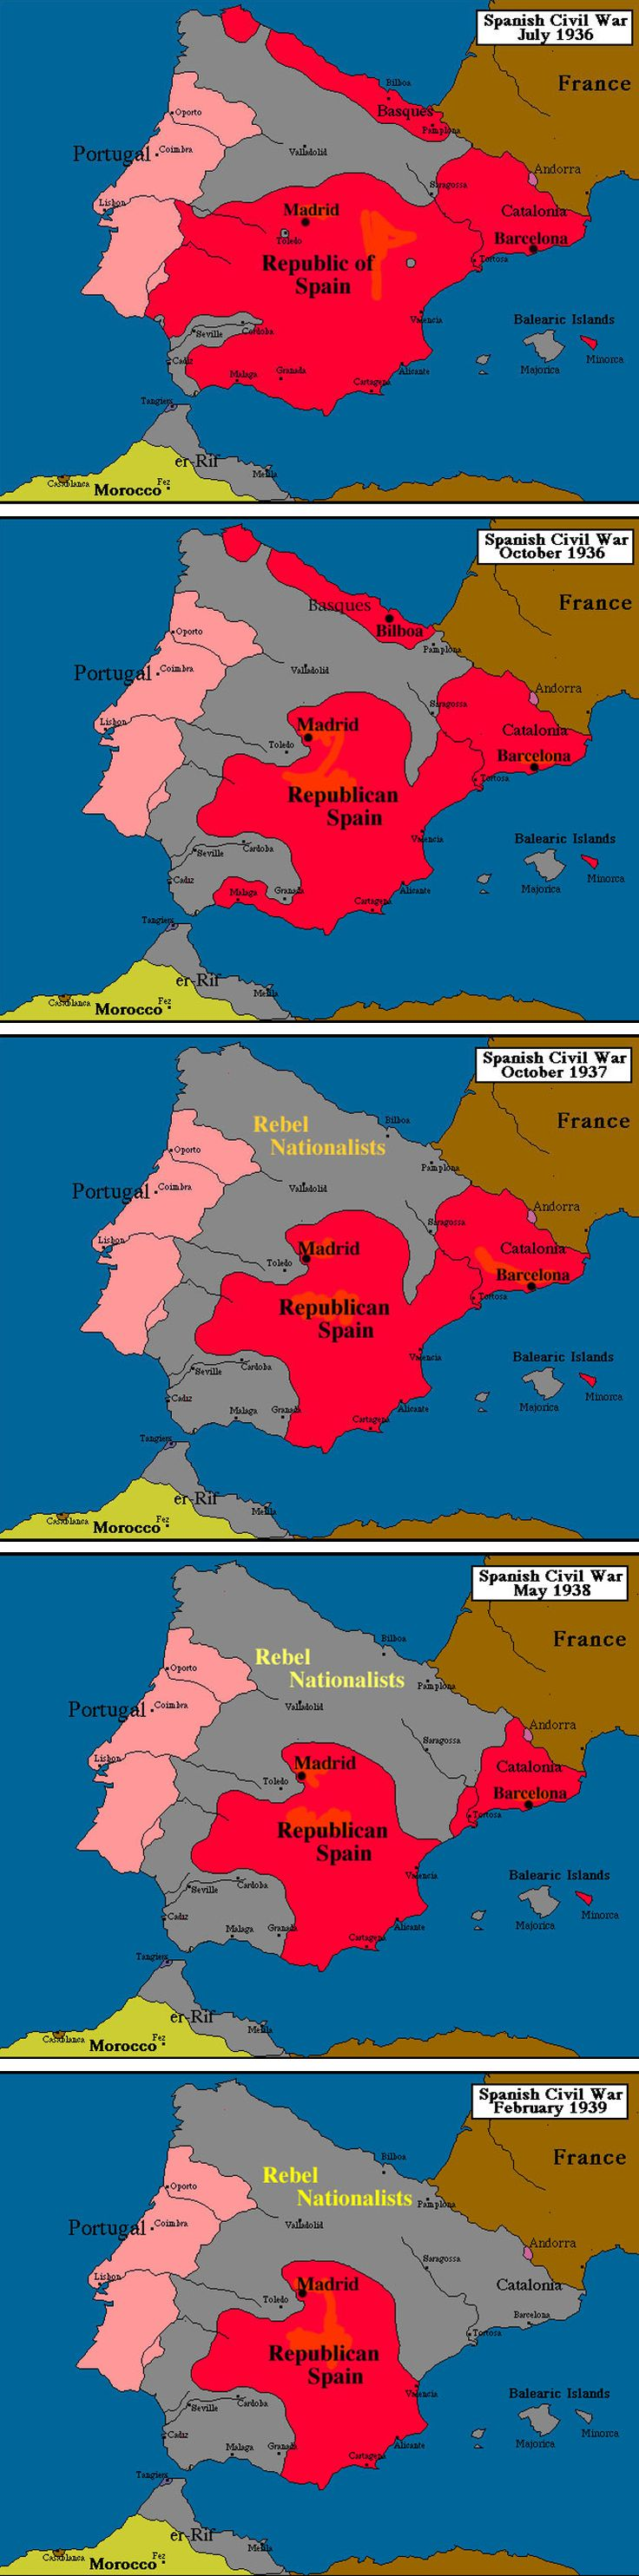 france and the spanish civil war essay The spanish civil war essay - the spanish civil war occurred in spain, during the years of 1936-1939 primarily this civil war was a result of a military revolt.